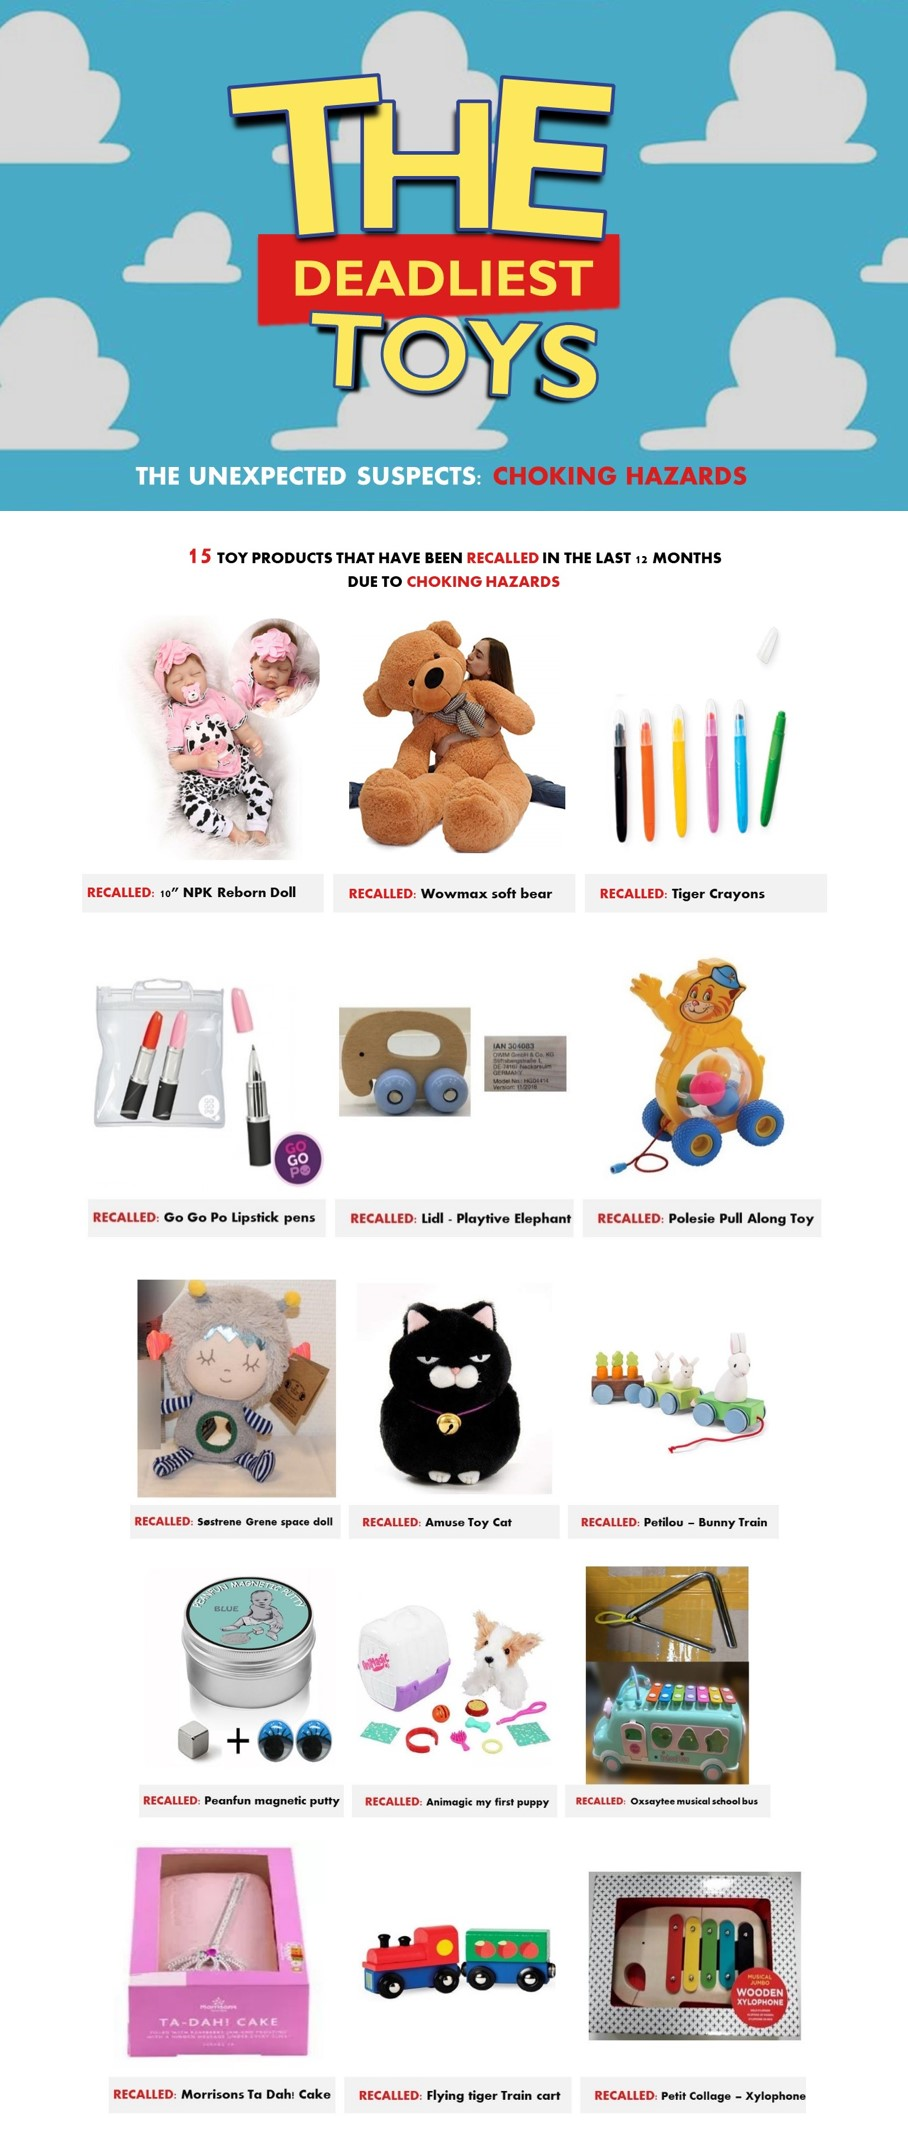 The Deadliest Toys CE Safety infographic